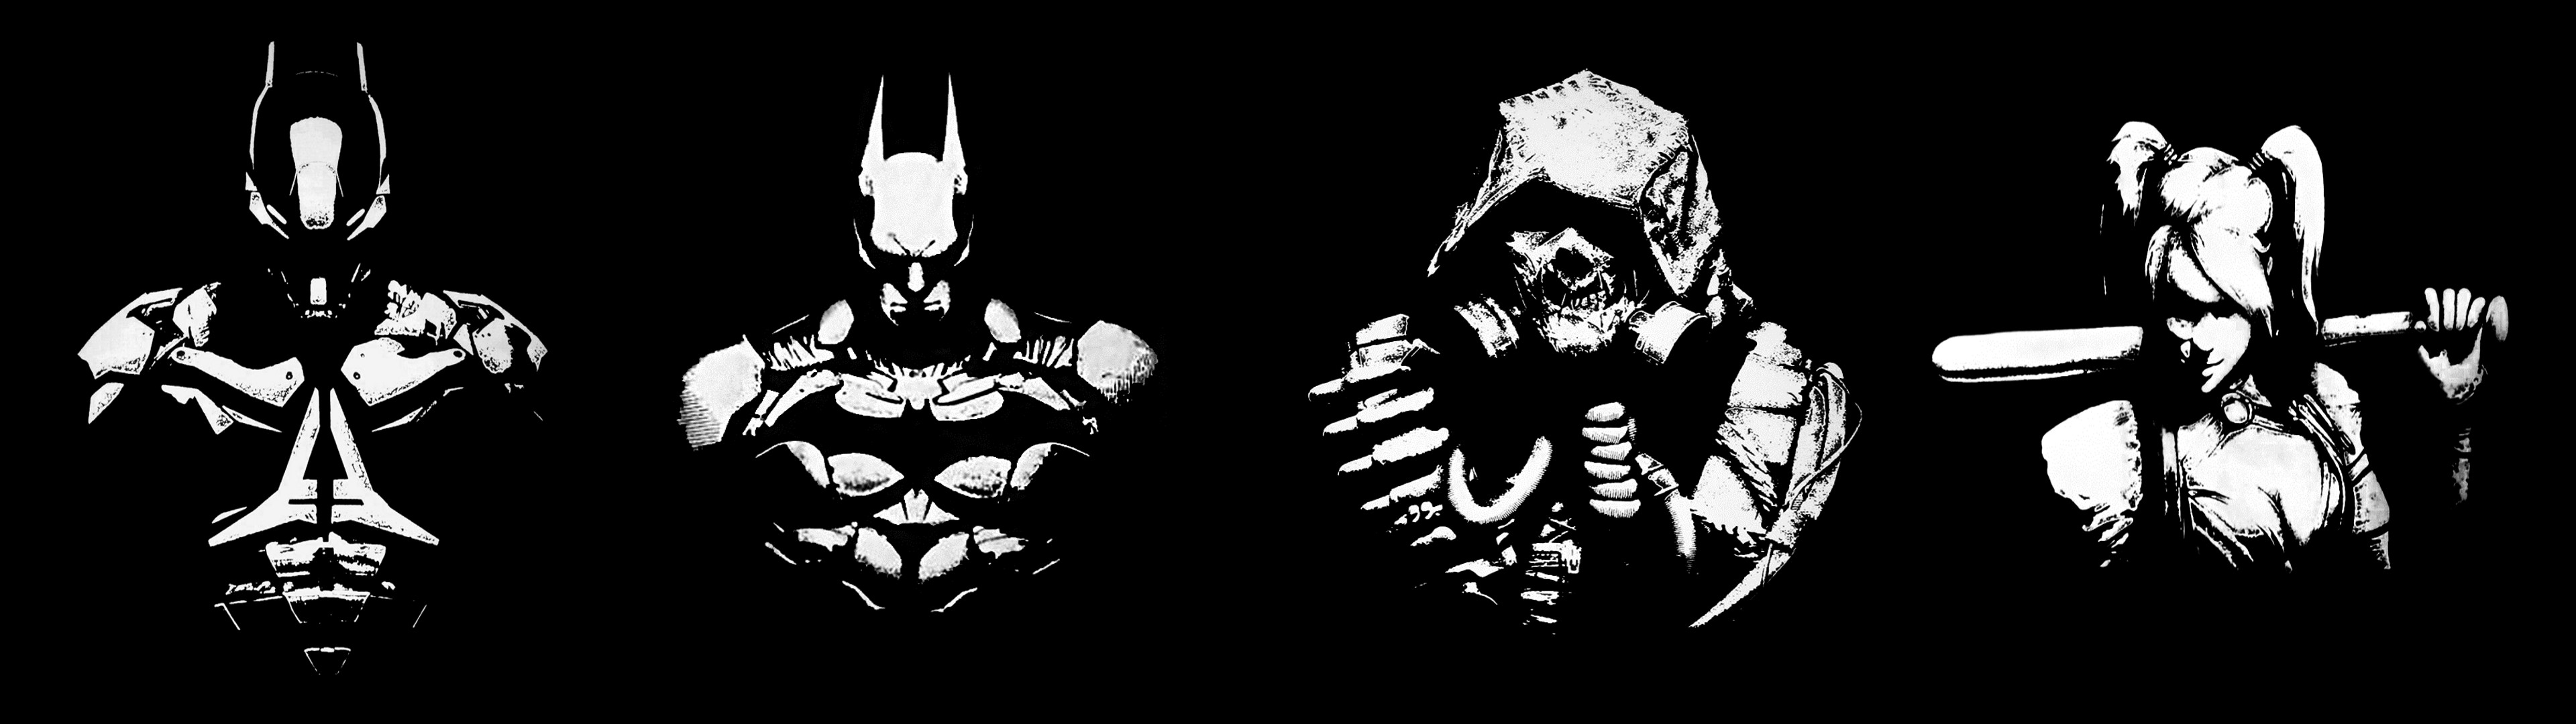 3840x1080 ] I edited four Batman Arkham wallpapers into one for .